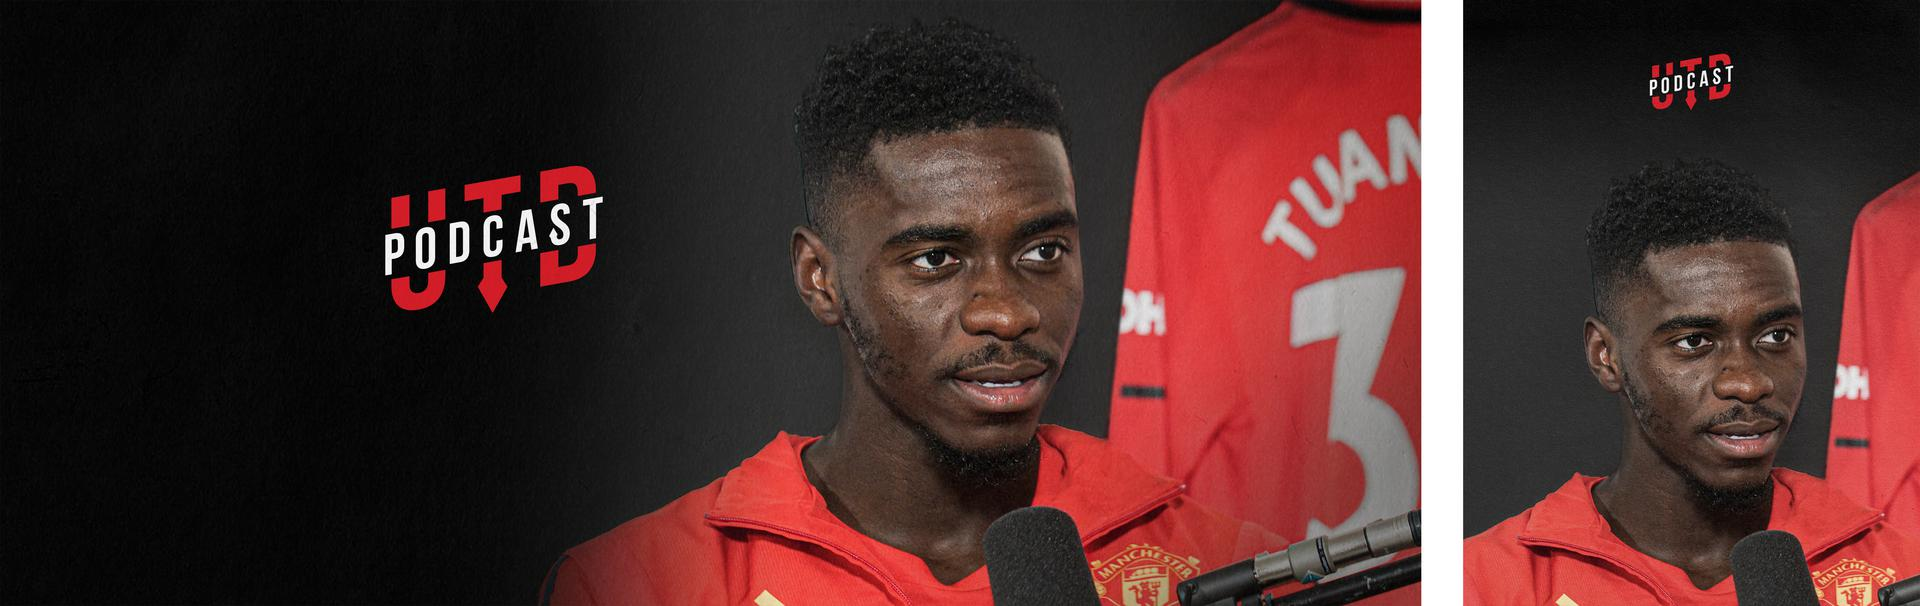 Promotional image of the Axel Tuanzebe episode of UTD Podcast